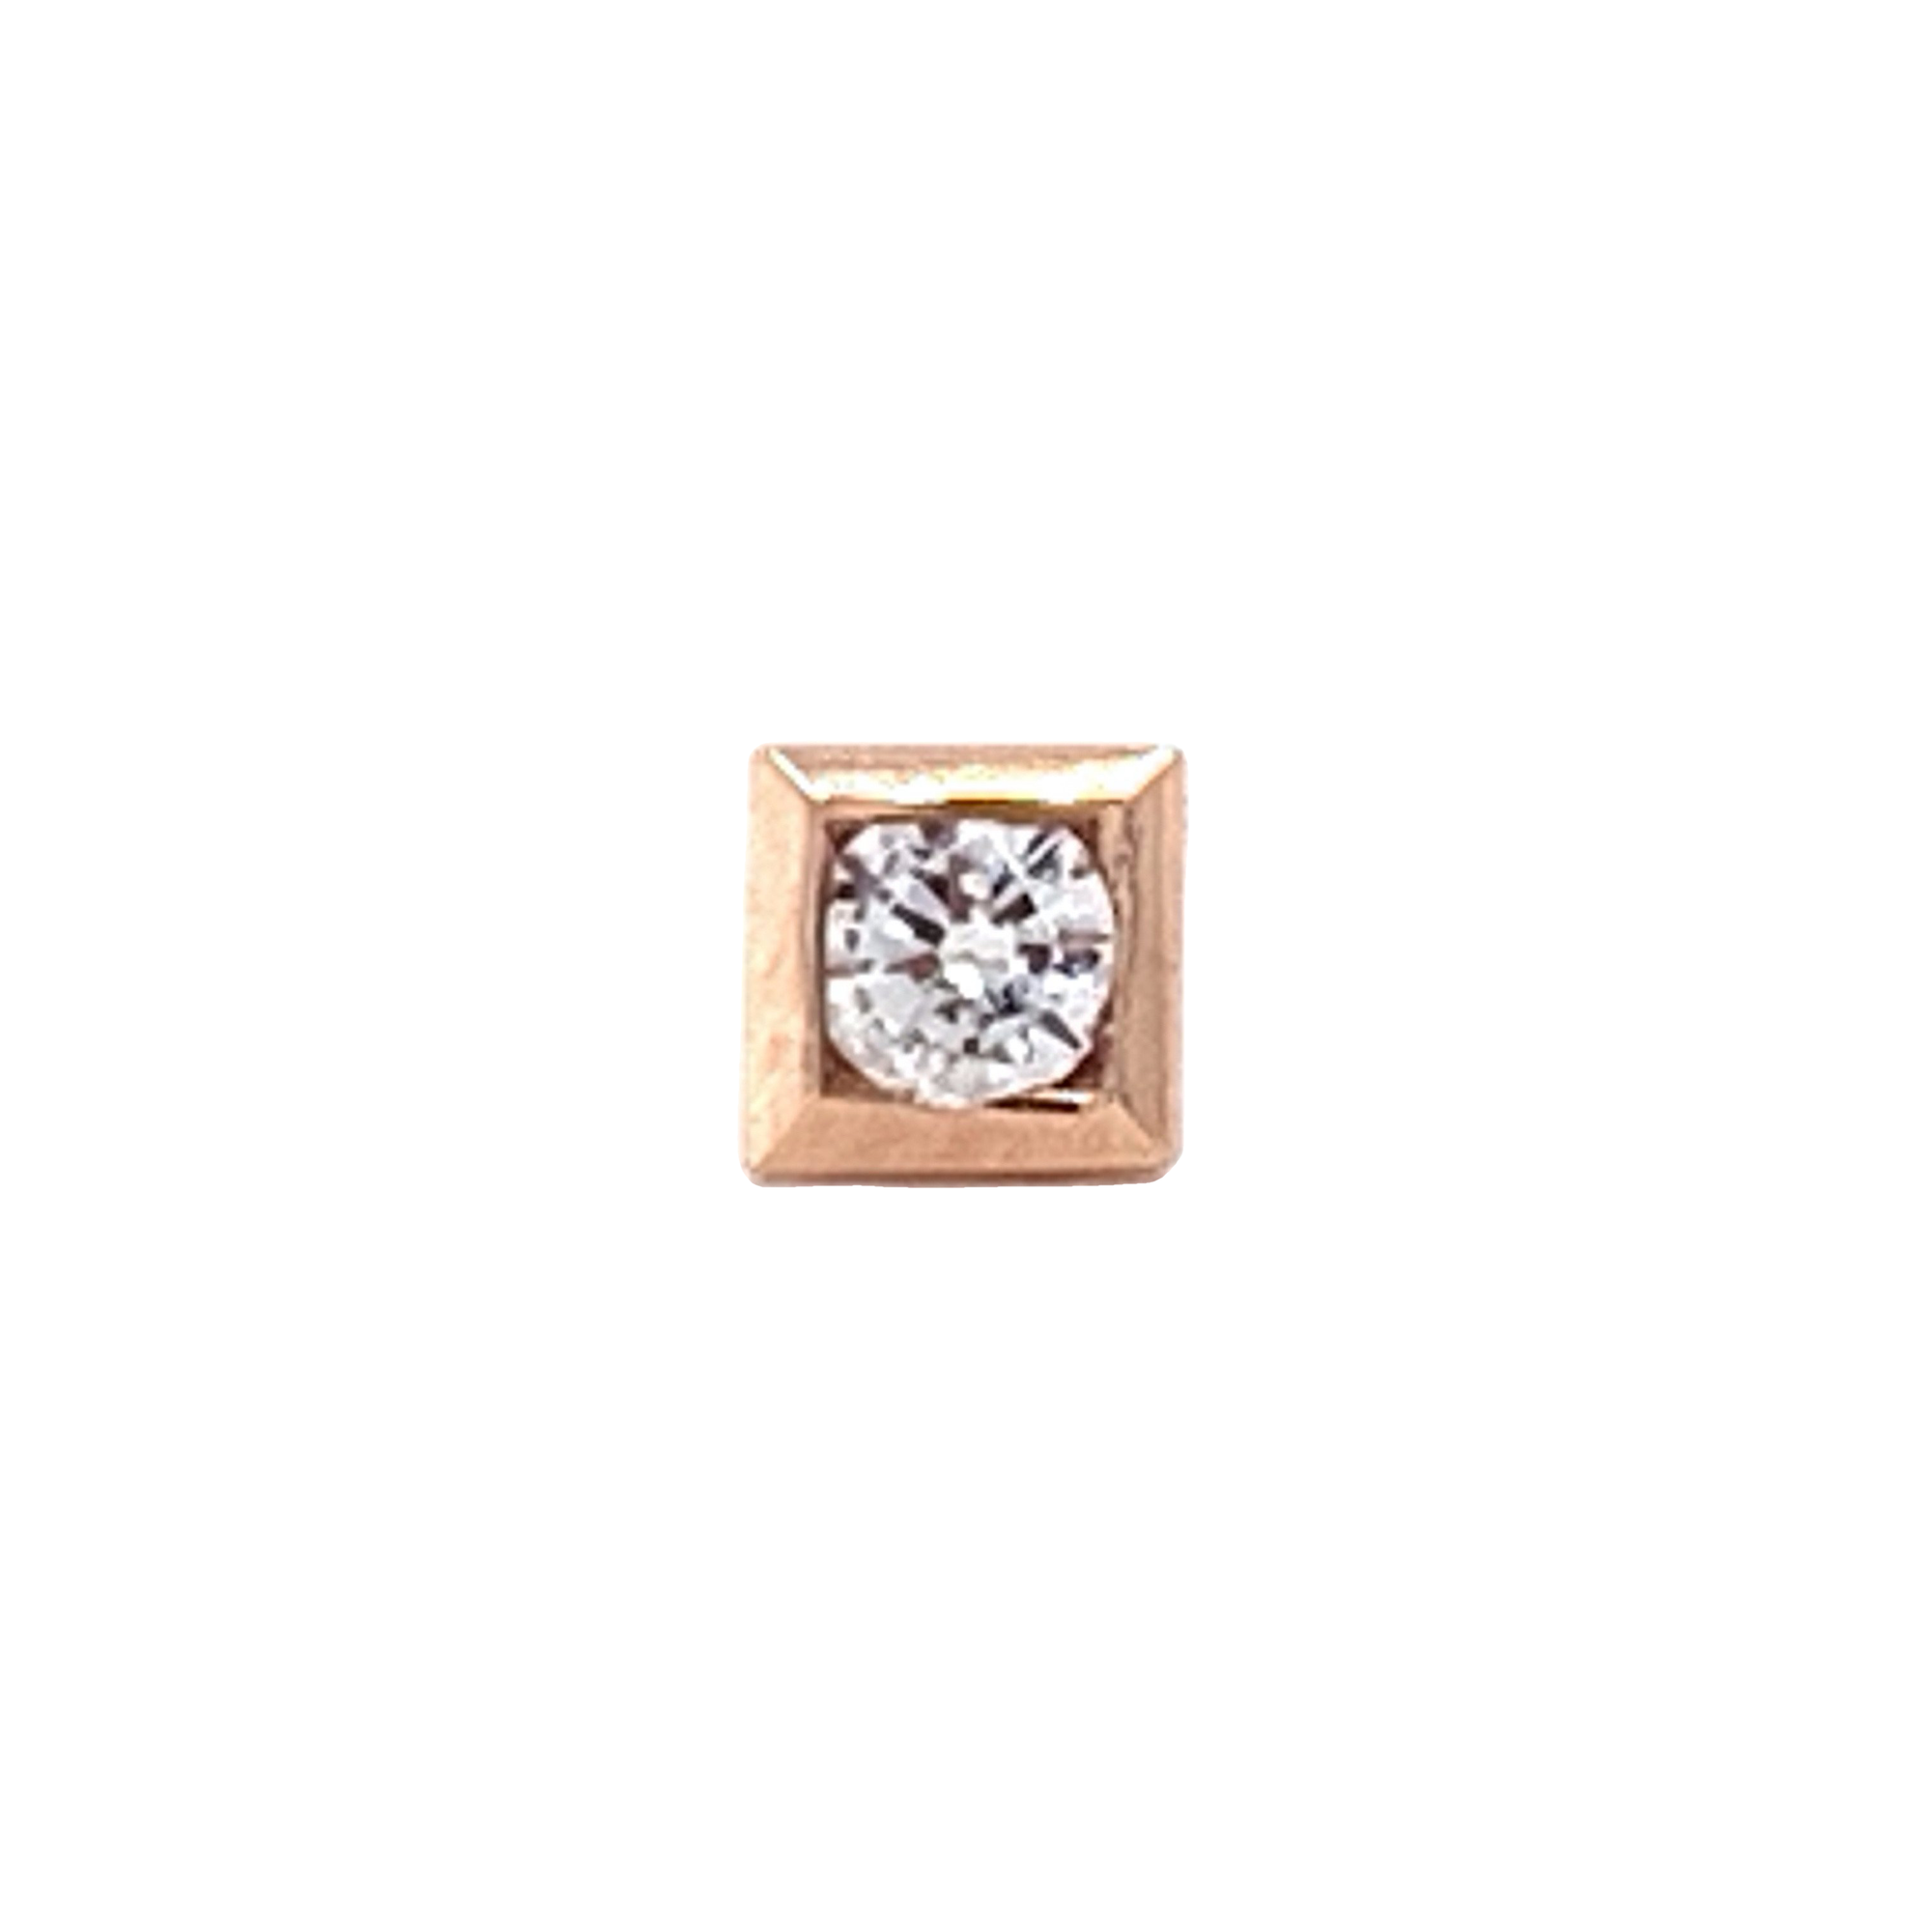 14Ct Rose Gold Bezel-Set Cz Square Attachment